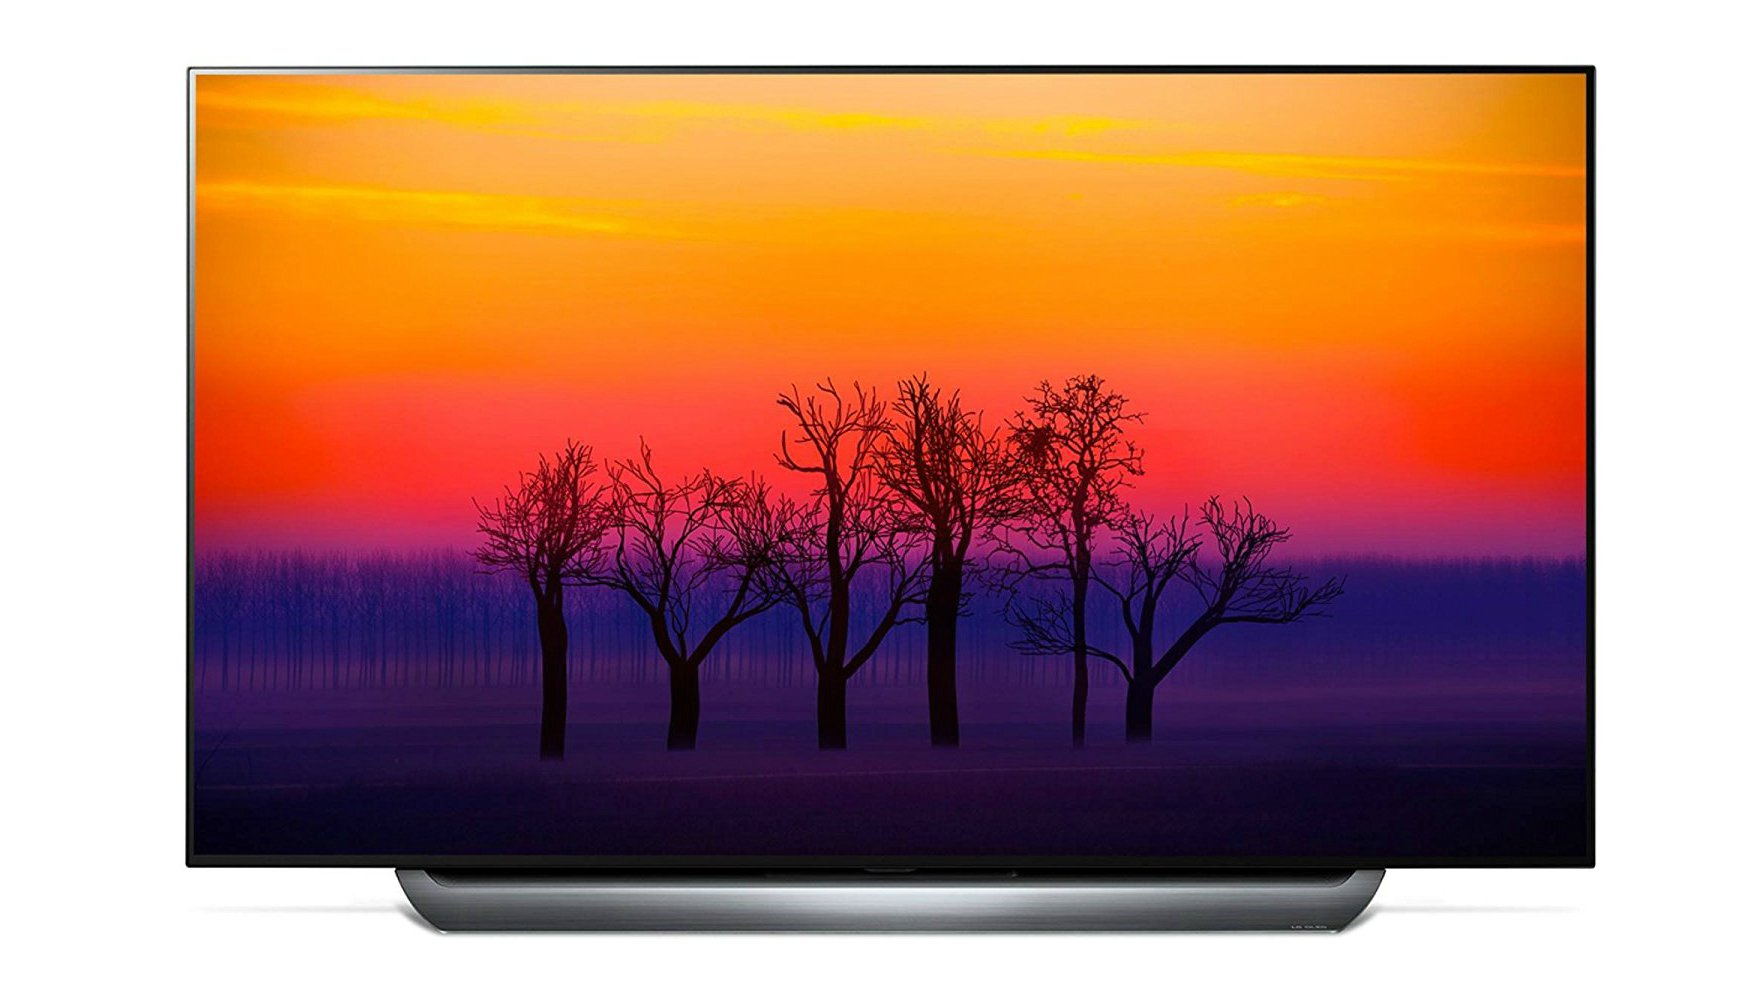 Best TV for gaming 2019: These 4K, HDR televisions will get